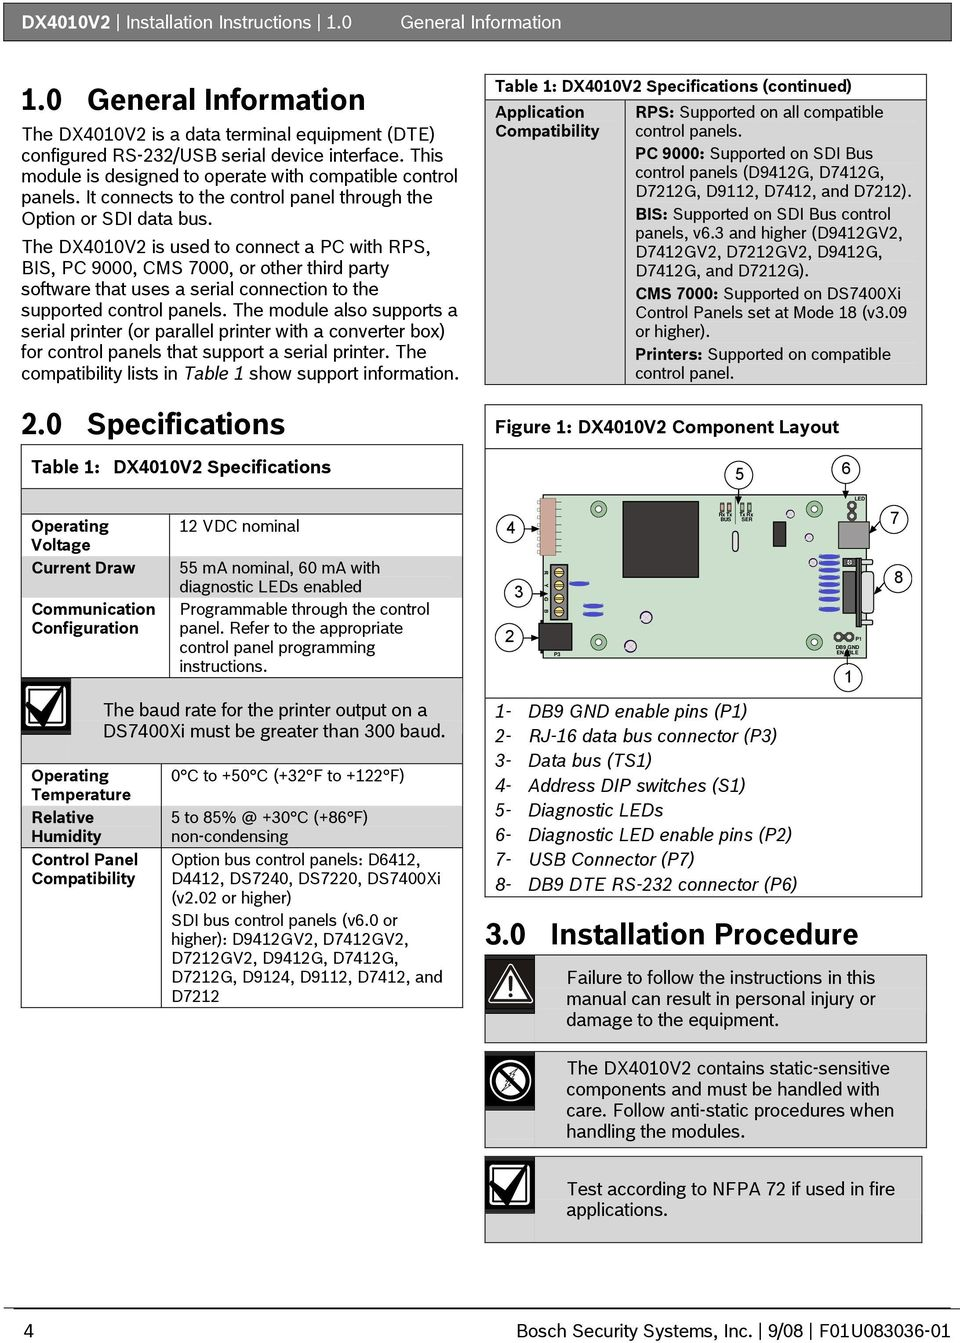 The DX4010V2 is used to connect a PC with RPS, BIS, PC 9000, CMS 7000, or other third party software that uses a serial connection to the supported control panels.